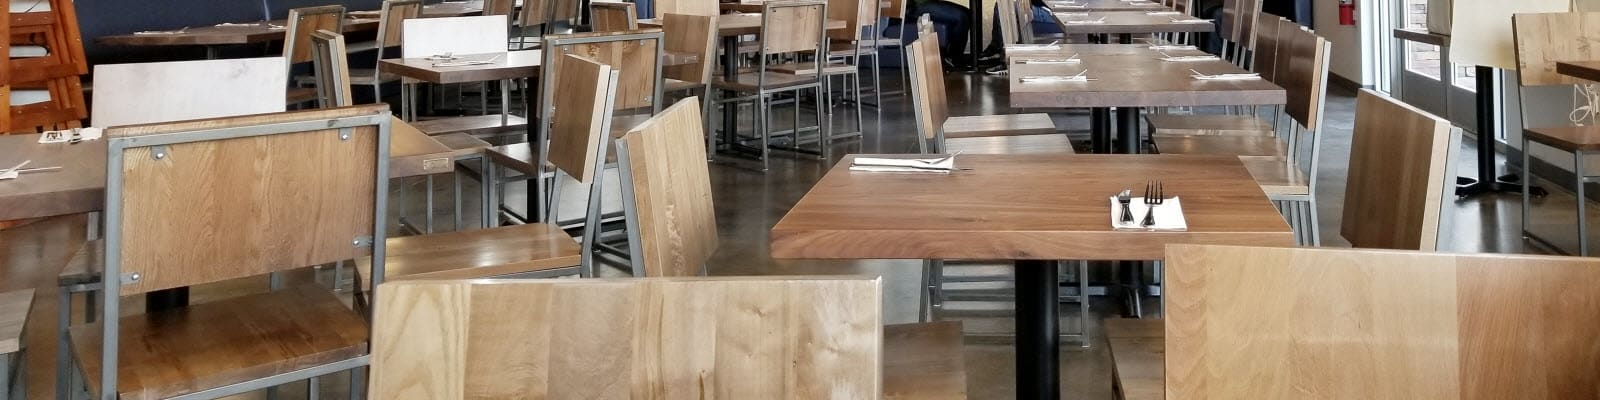 Tips And Layouts For Cafe Interior Design Or Coffee Shop Decor